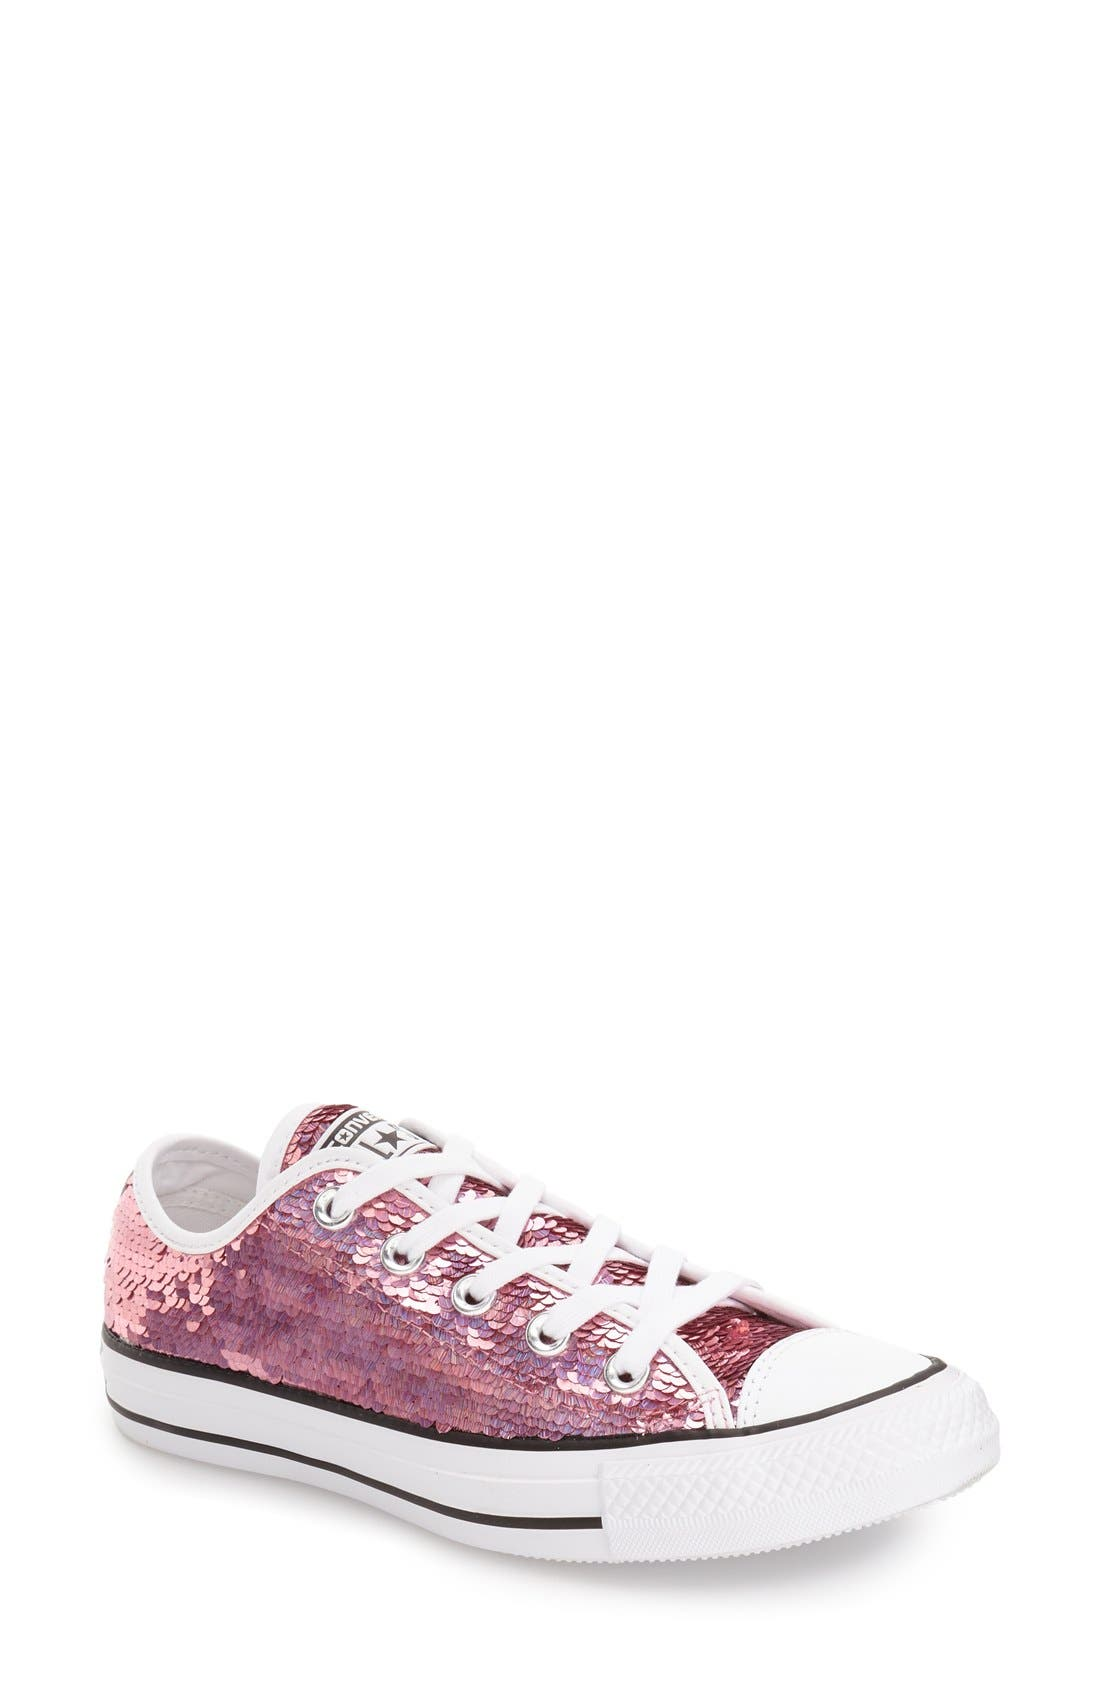 Alternate Image 1 Selected - Converse Chuck Taylor® All Star® 'Holiday Party' Low Top Sequined Sneaker (Women)